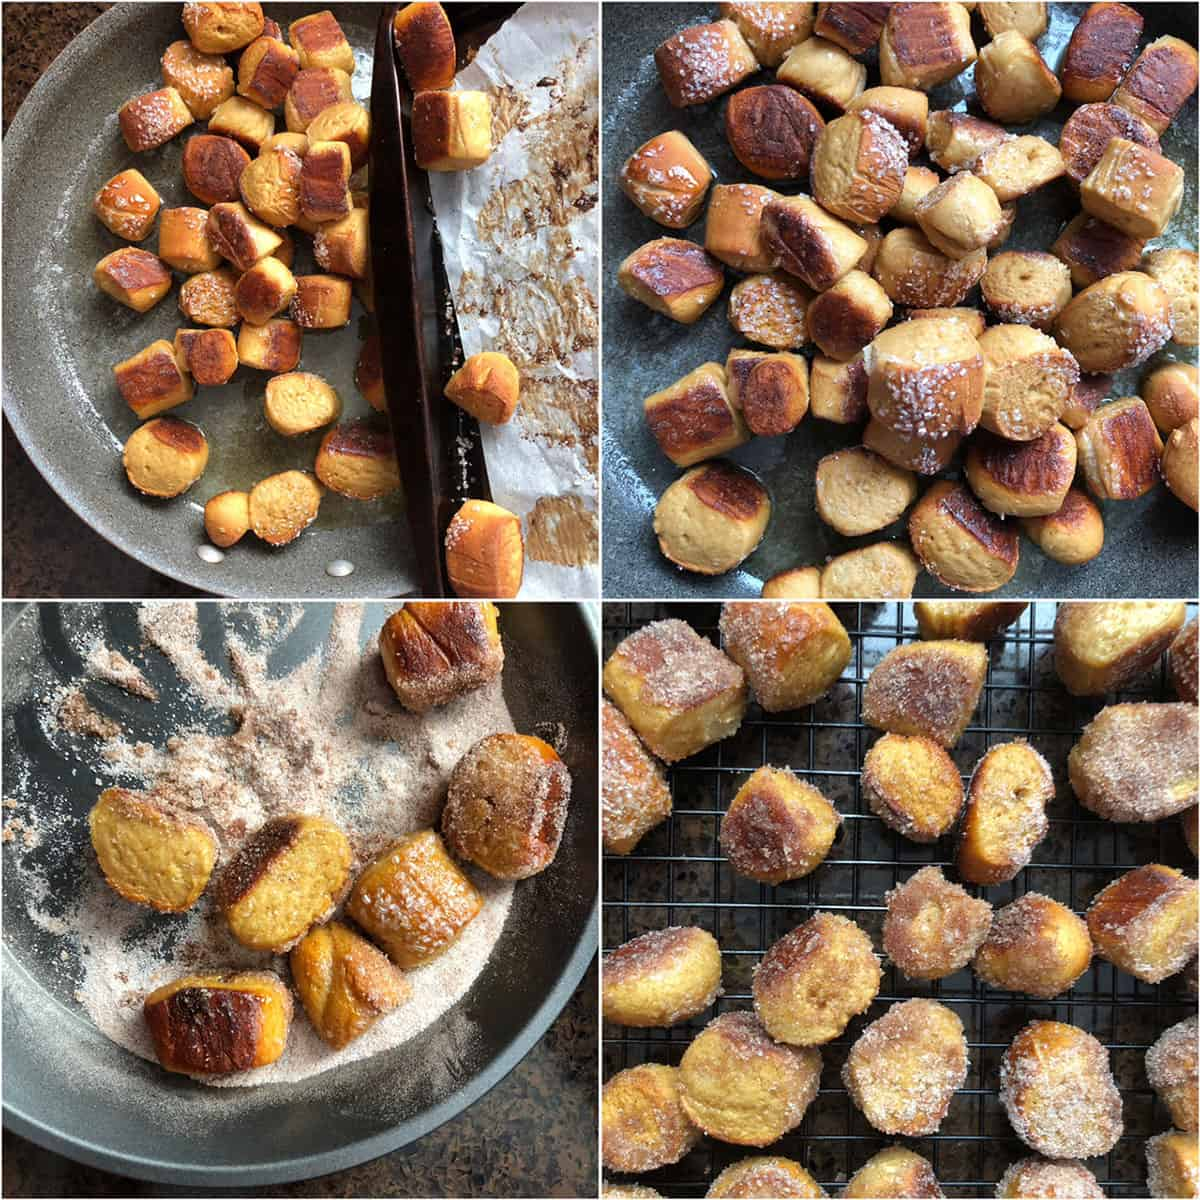 Mini bites coated with melted butter and rolled in cinnamon sugar